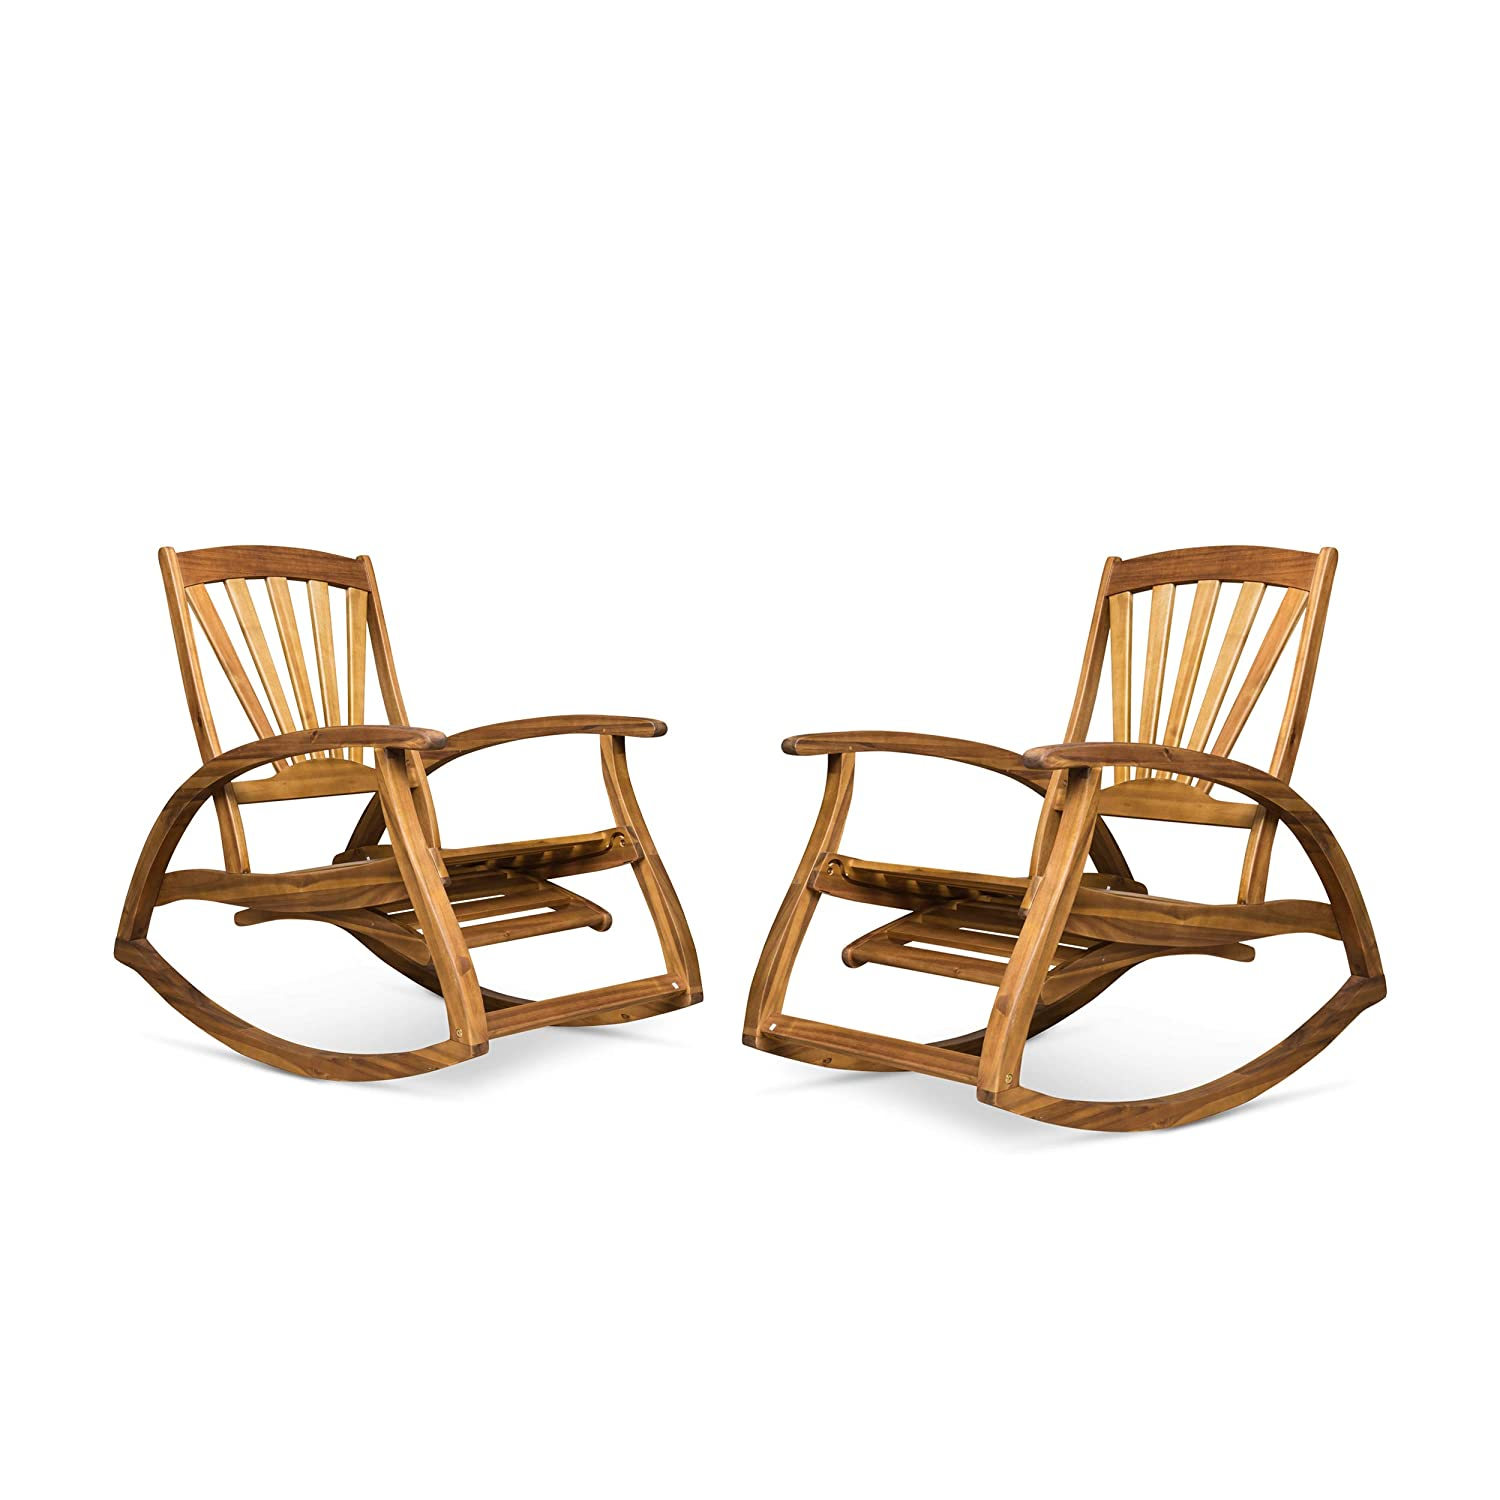 Great Deal Furniture Lee Rocker Recliners for Porch or Patio | Acacia Wood | Teak Finish | Set of 2